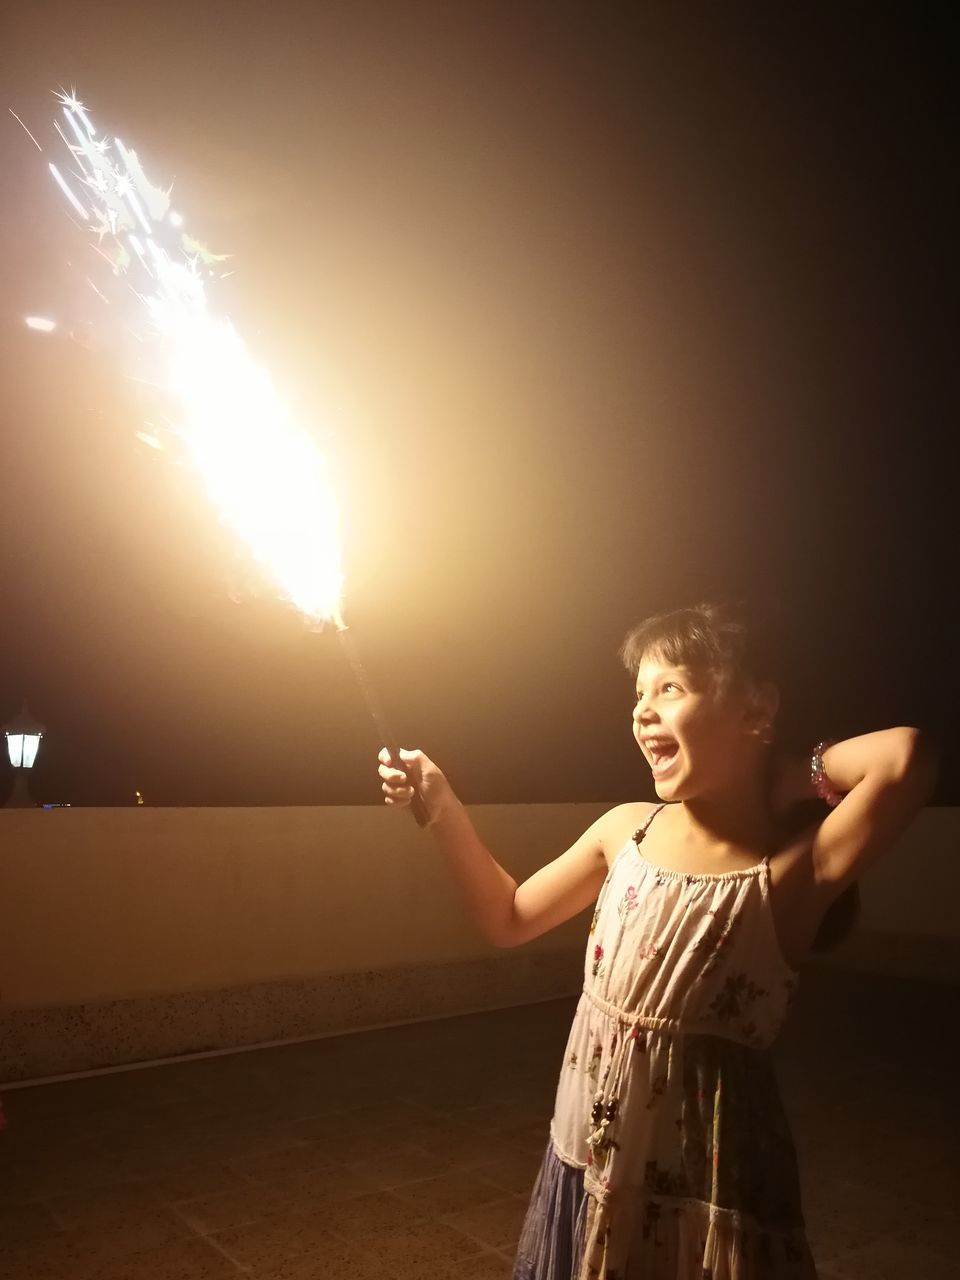 Girl Holding Firework While Standing On Building Terrace At Night